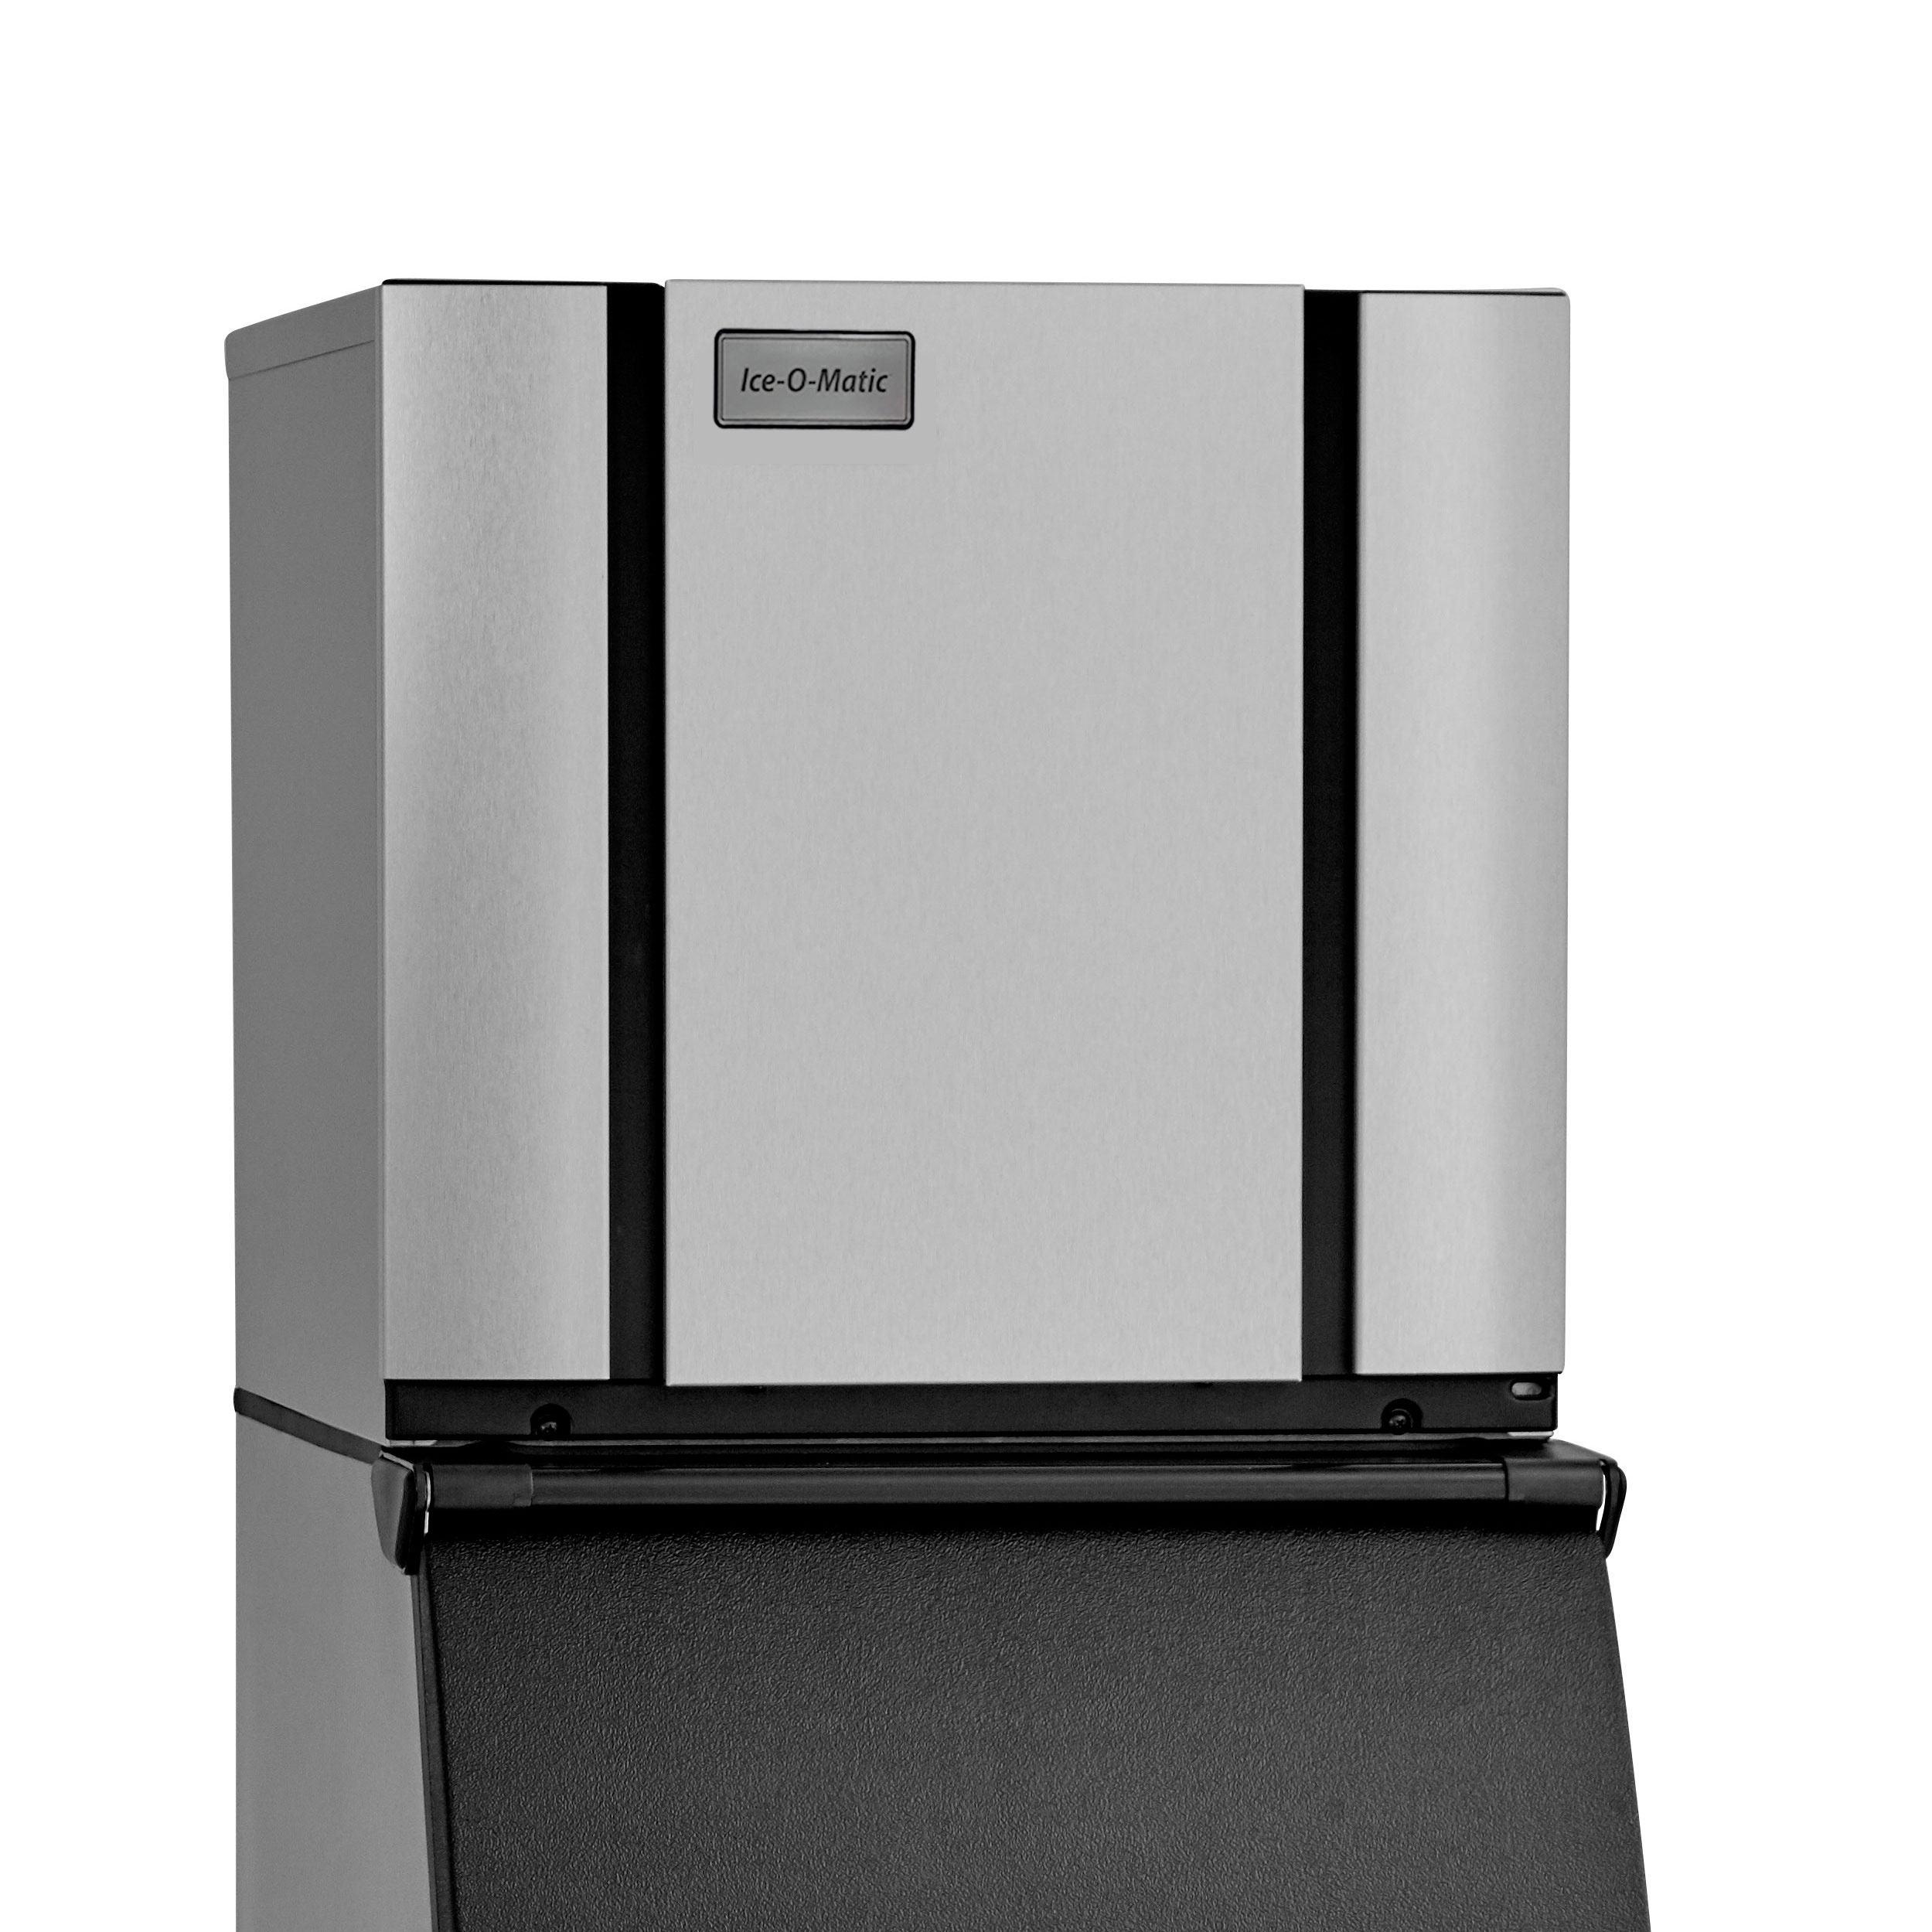 Ice-O-Matic CIM0826HR ice maker, cube-style